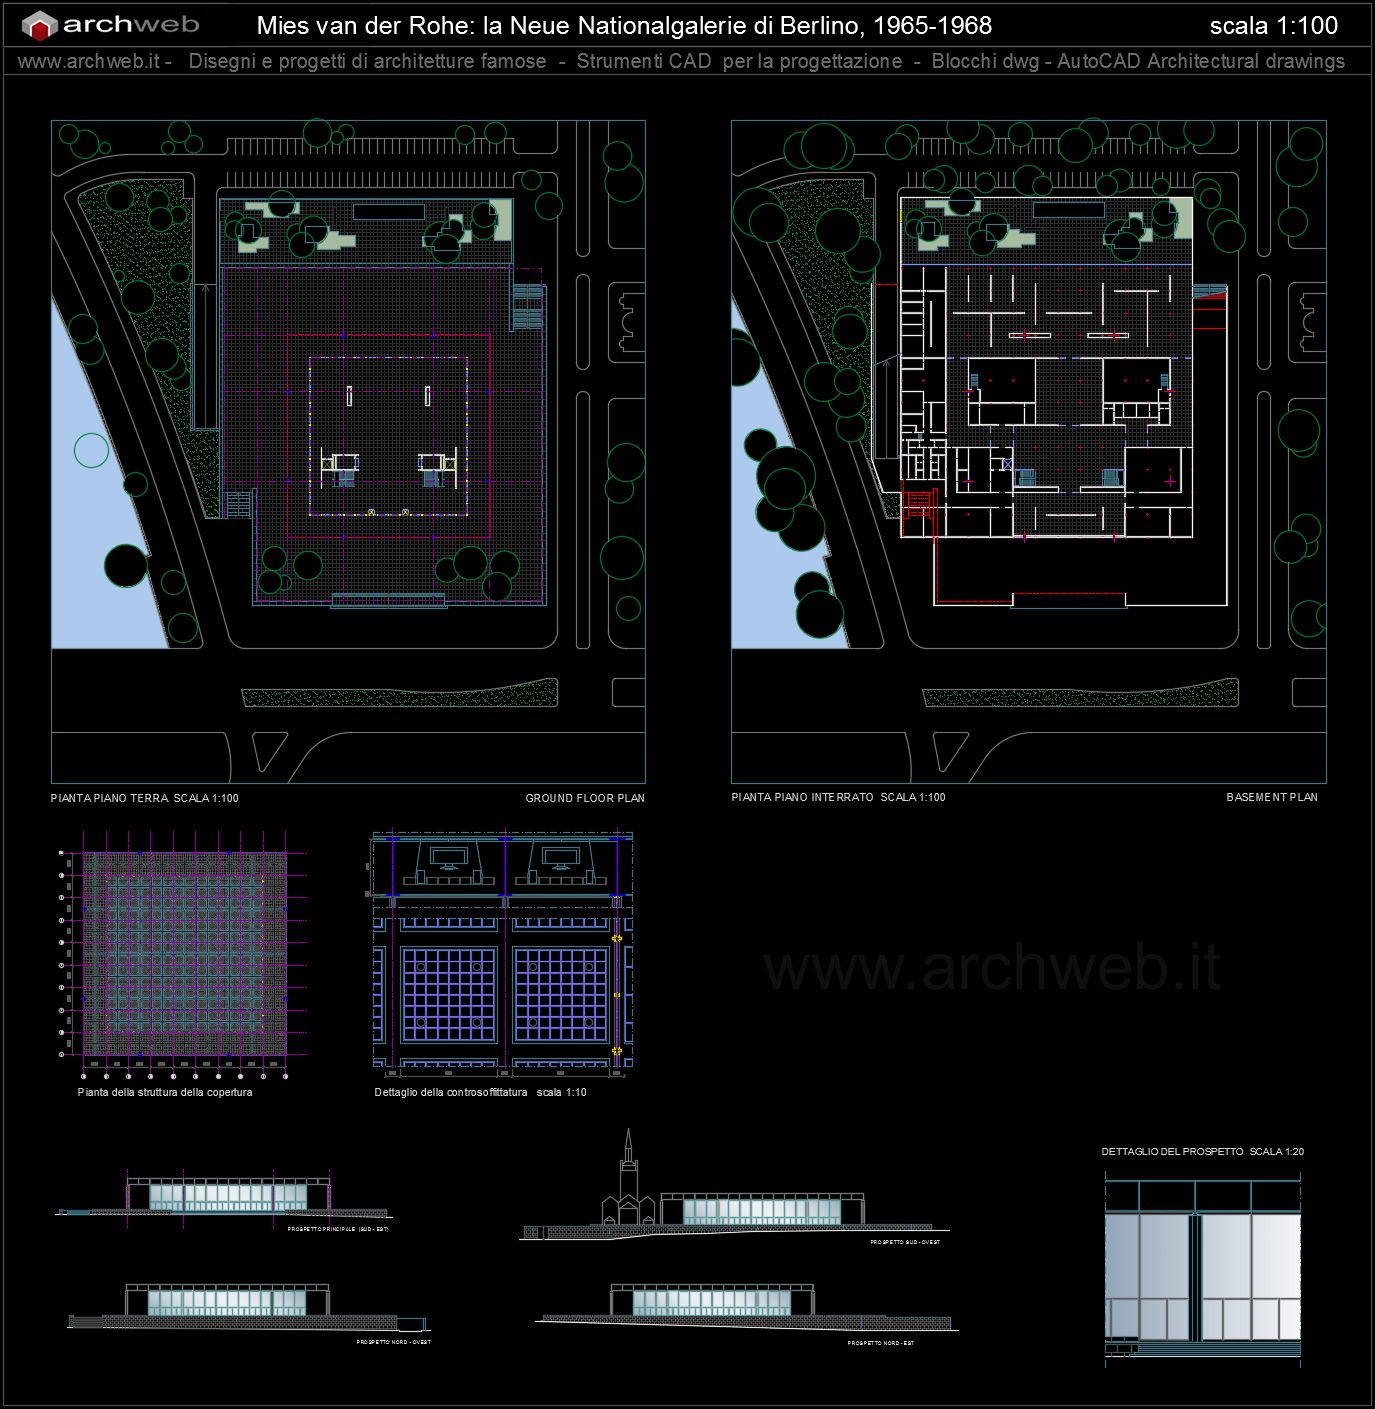 National Gallery Autocad Dwg Projetos Pinterest Autocad And Arch # Muebles Mies Van Der Rohe Autocad